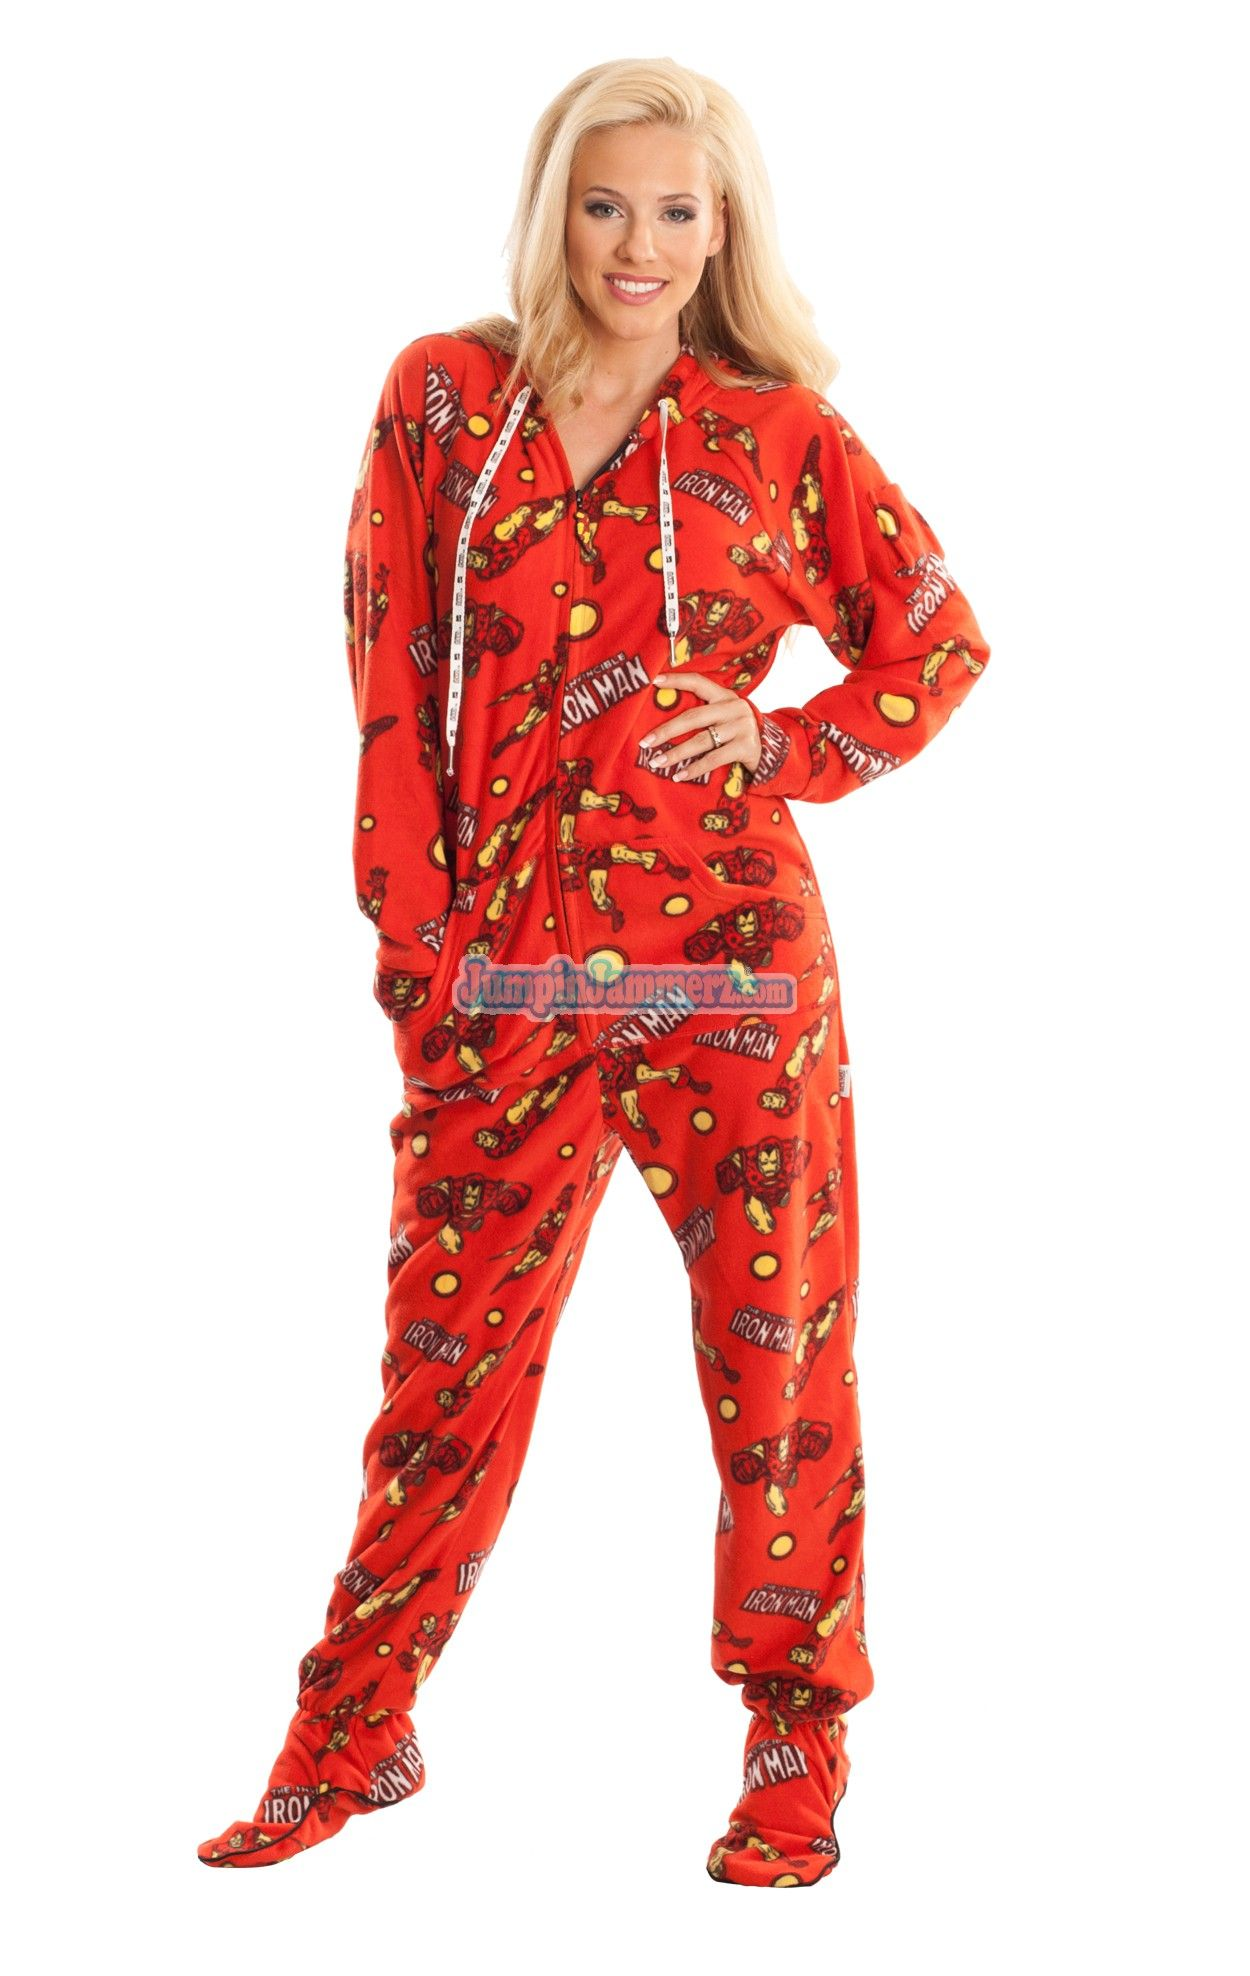 Ironman - Marvel Comics - Pajamas Footie PJs Onesies One Piece Adult Pajamas c492f2065